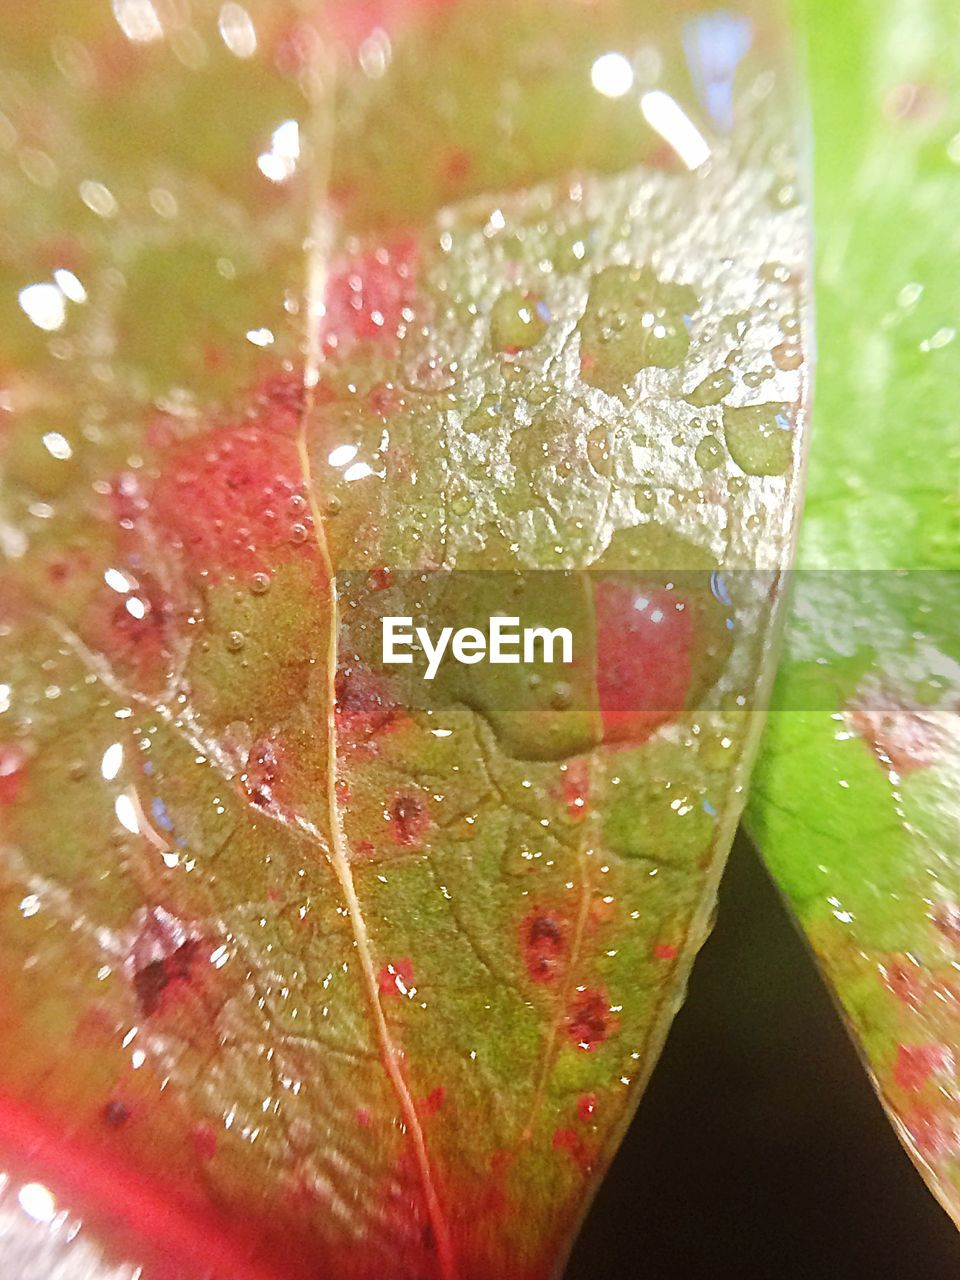 leaf, close-up, freshness, water, no people, green color, drop, day, nature, growth, indoors, beauty in nature